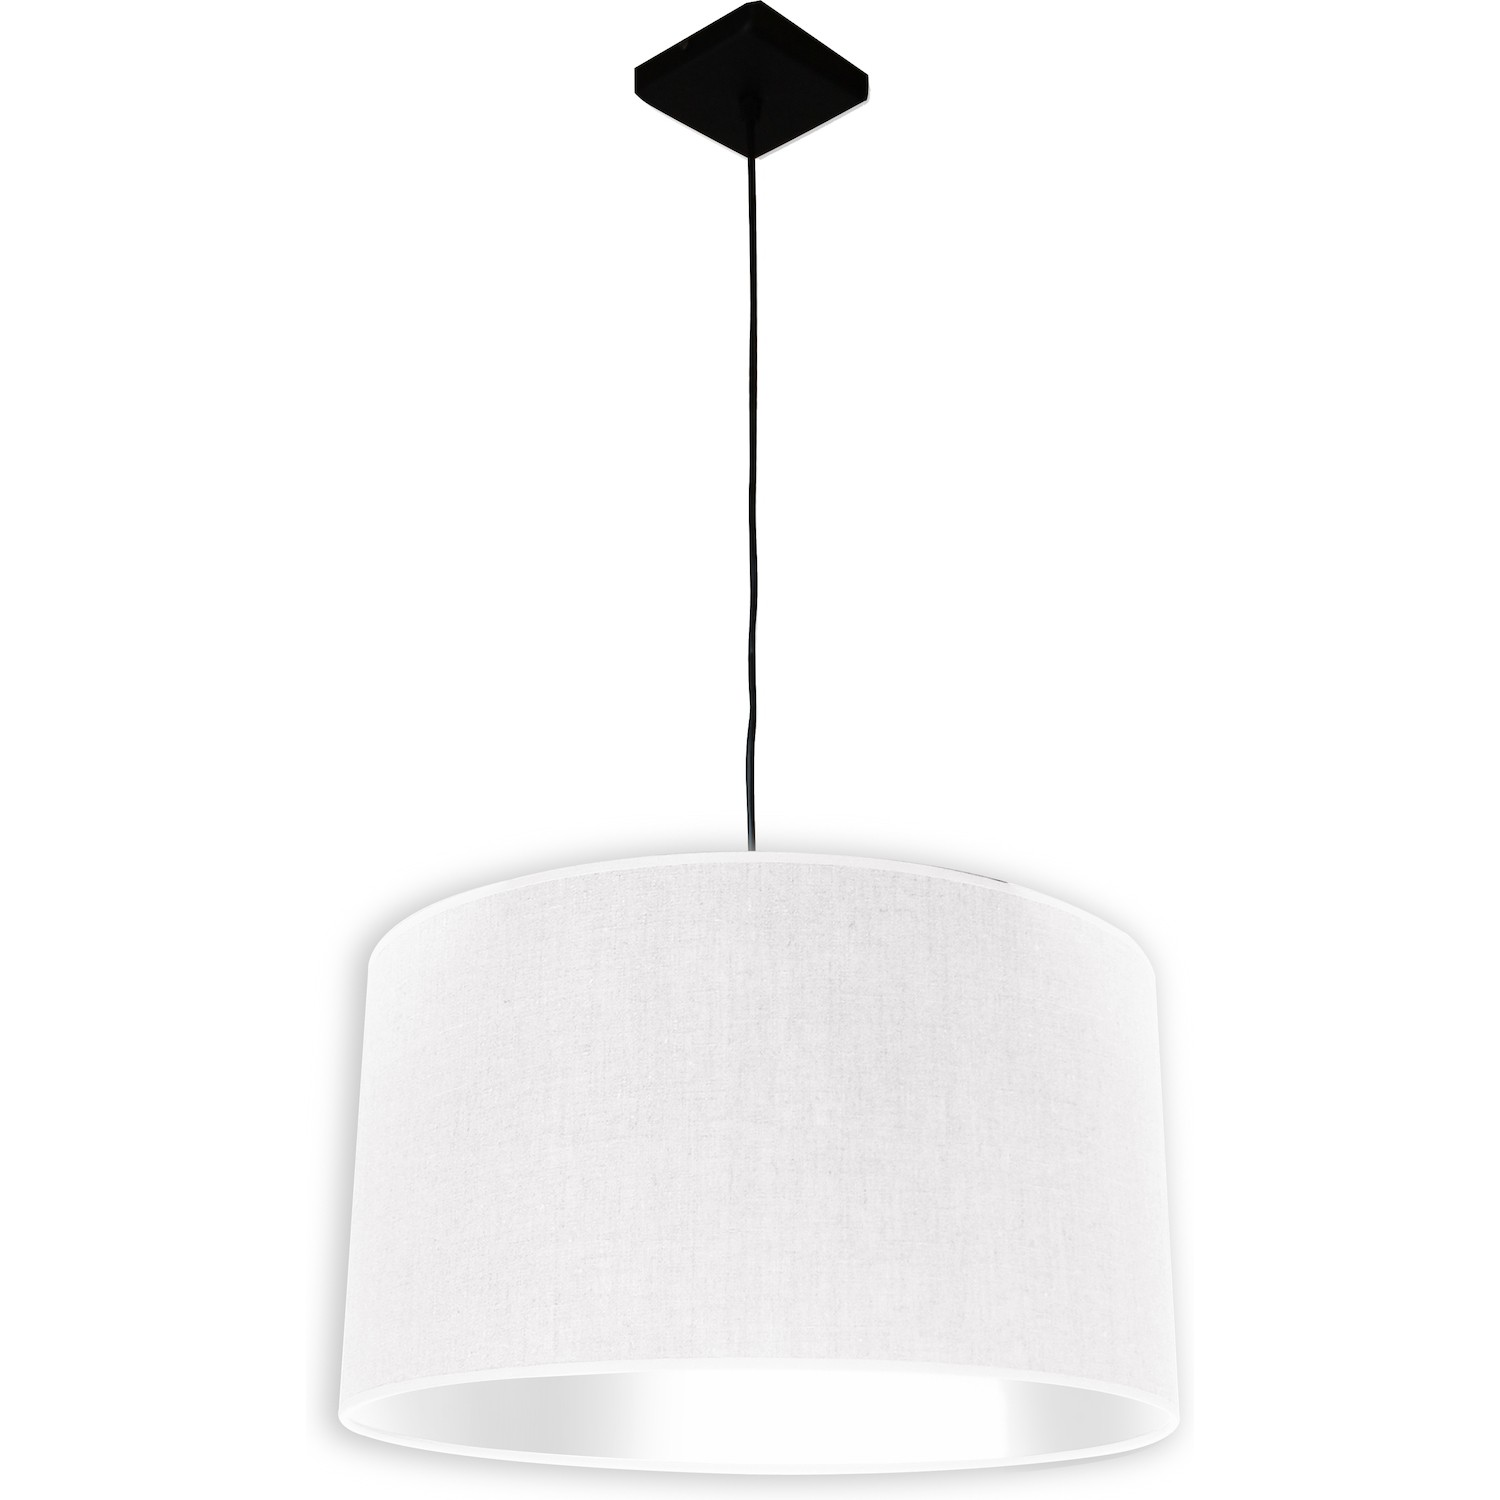 Suspension Lin Suspension 1 Lampe Abat Jour Tissu